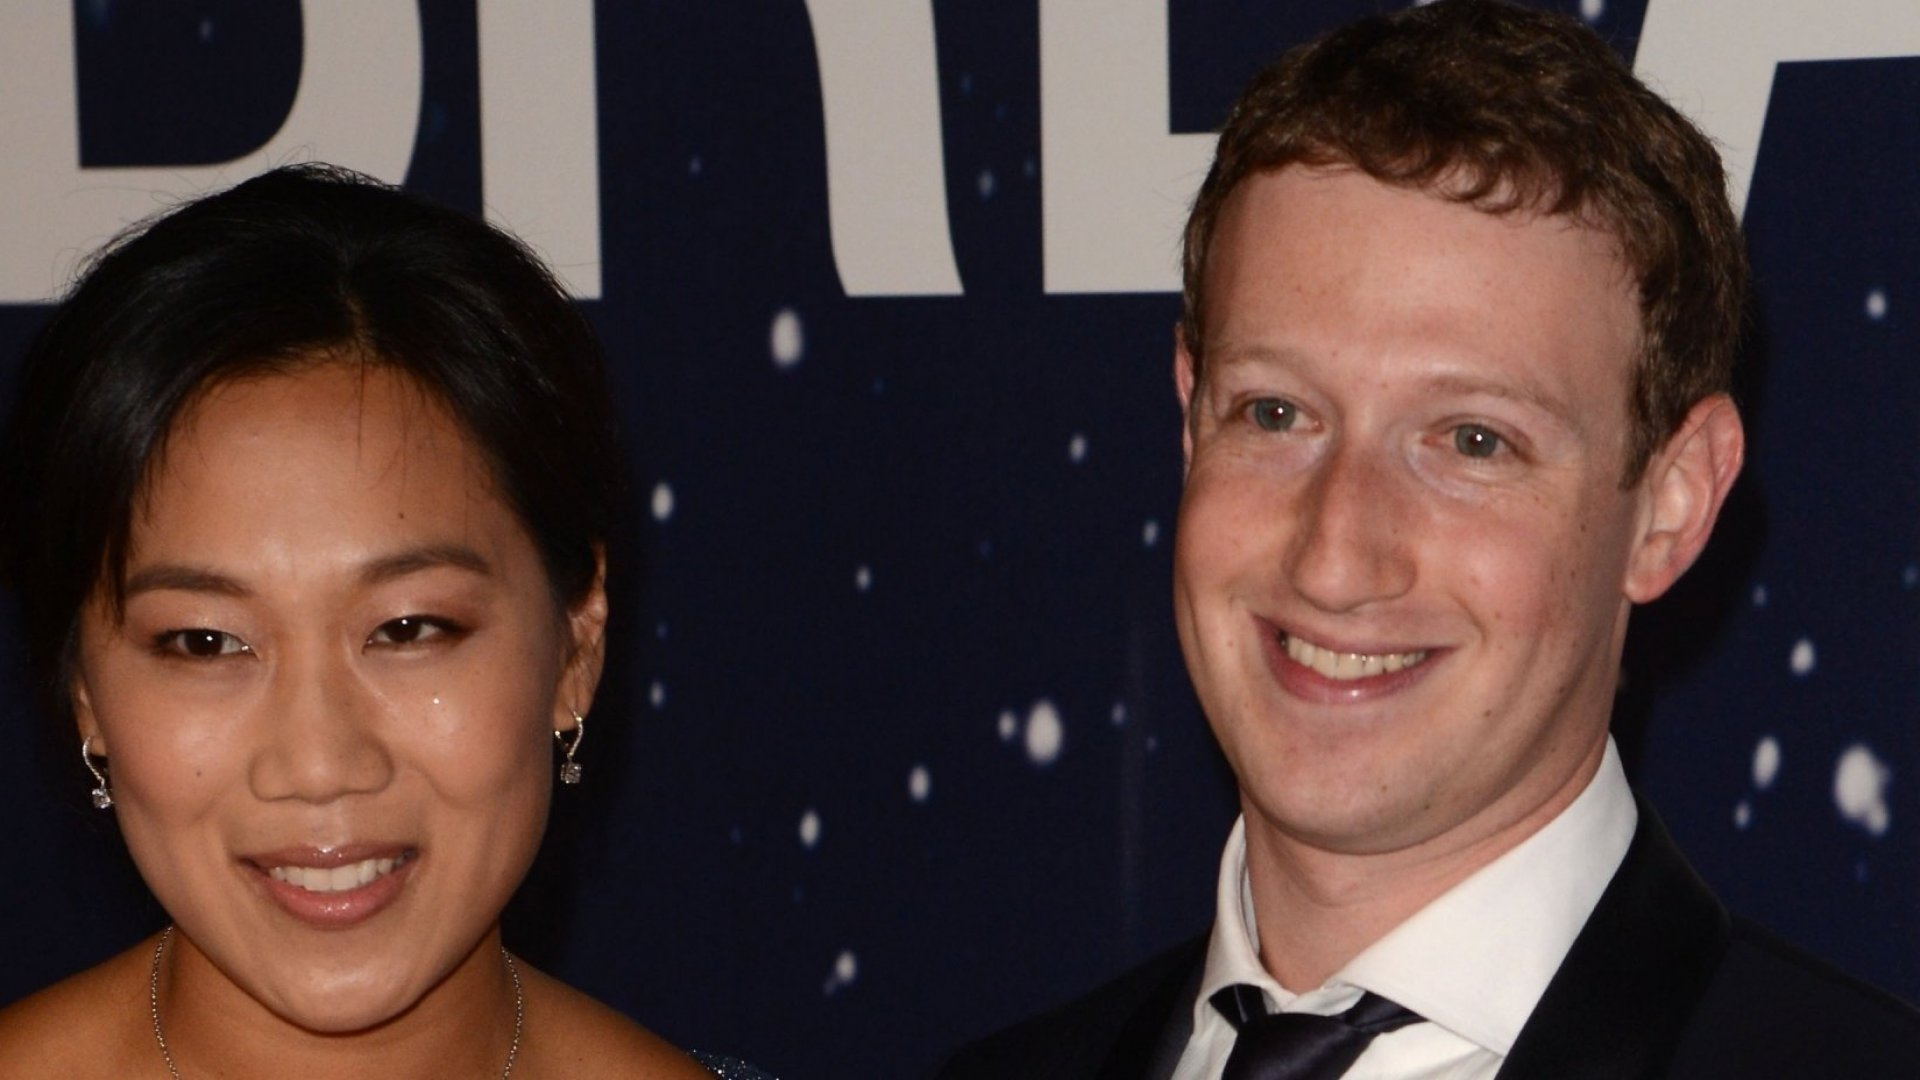 Why People Should Stop Complaining About Zuckerberg's Latest Gift